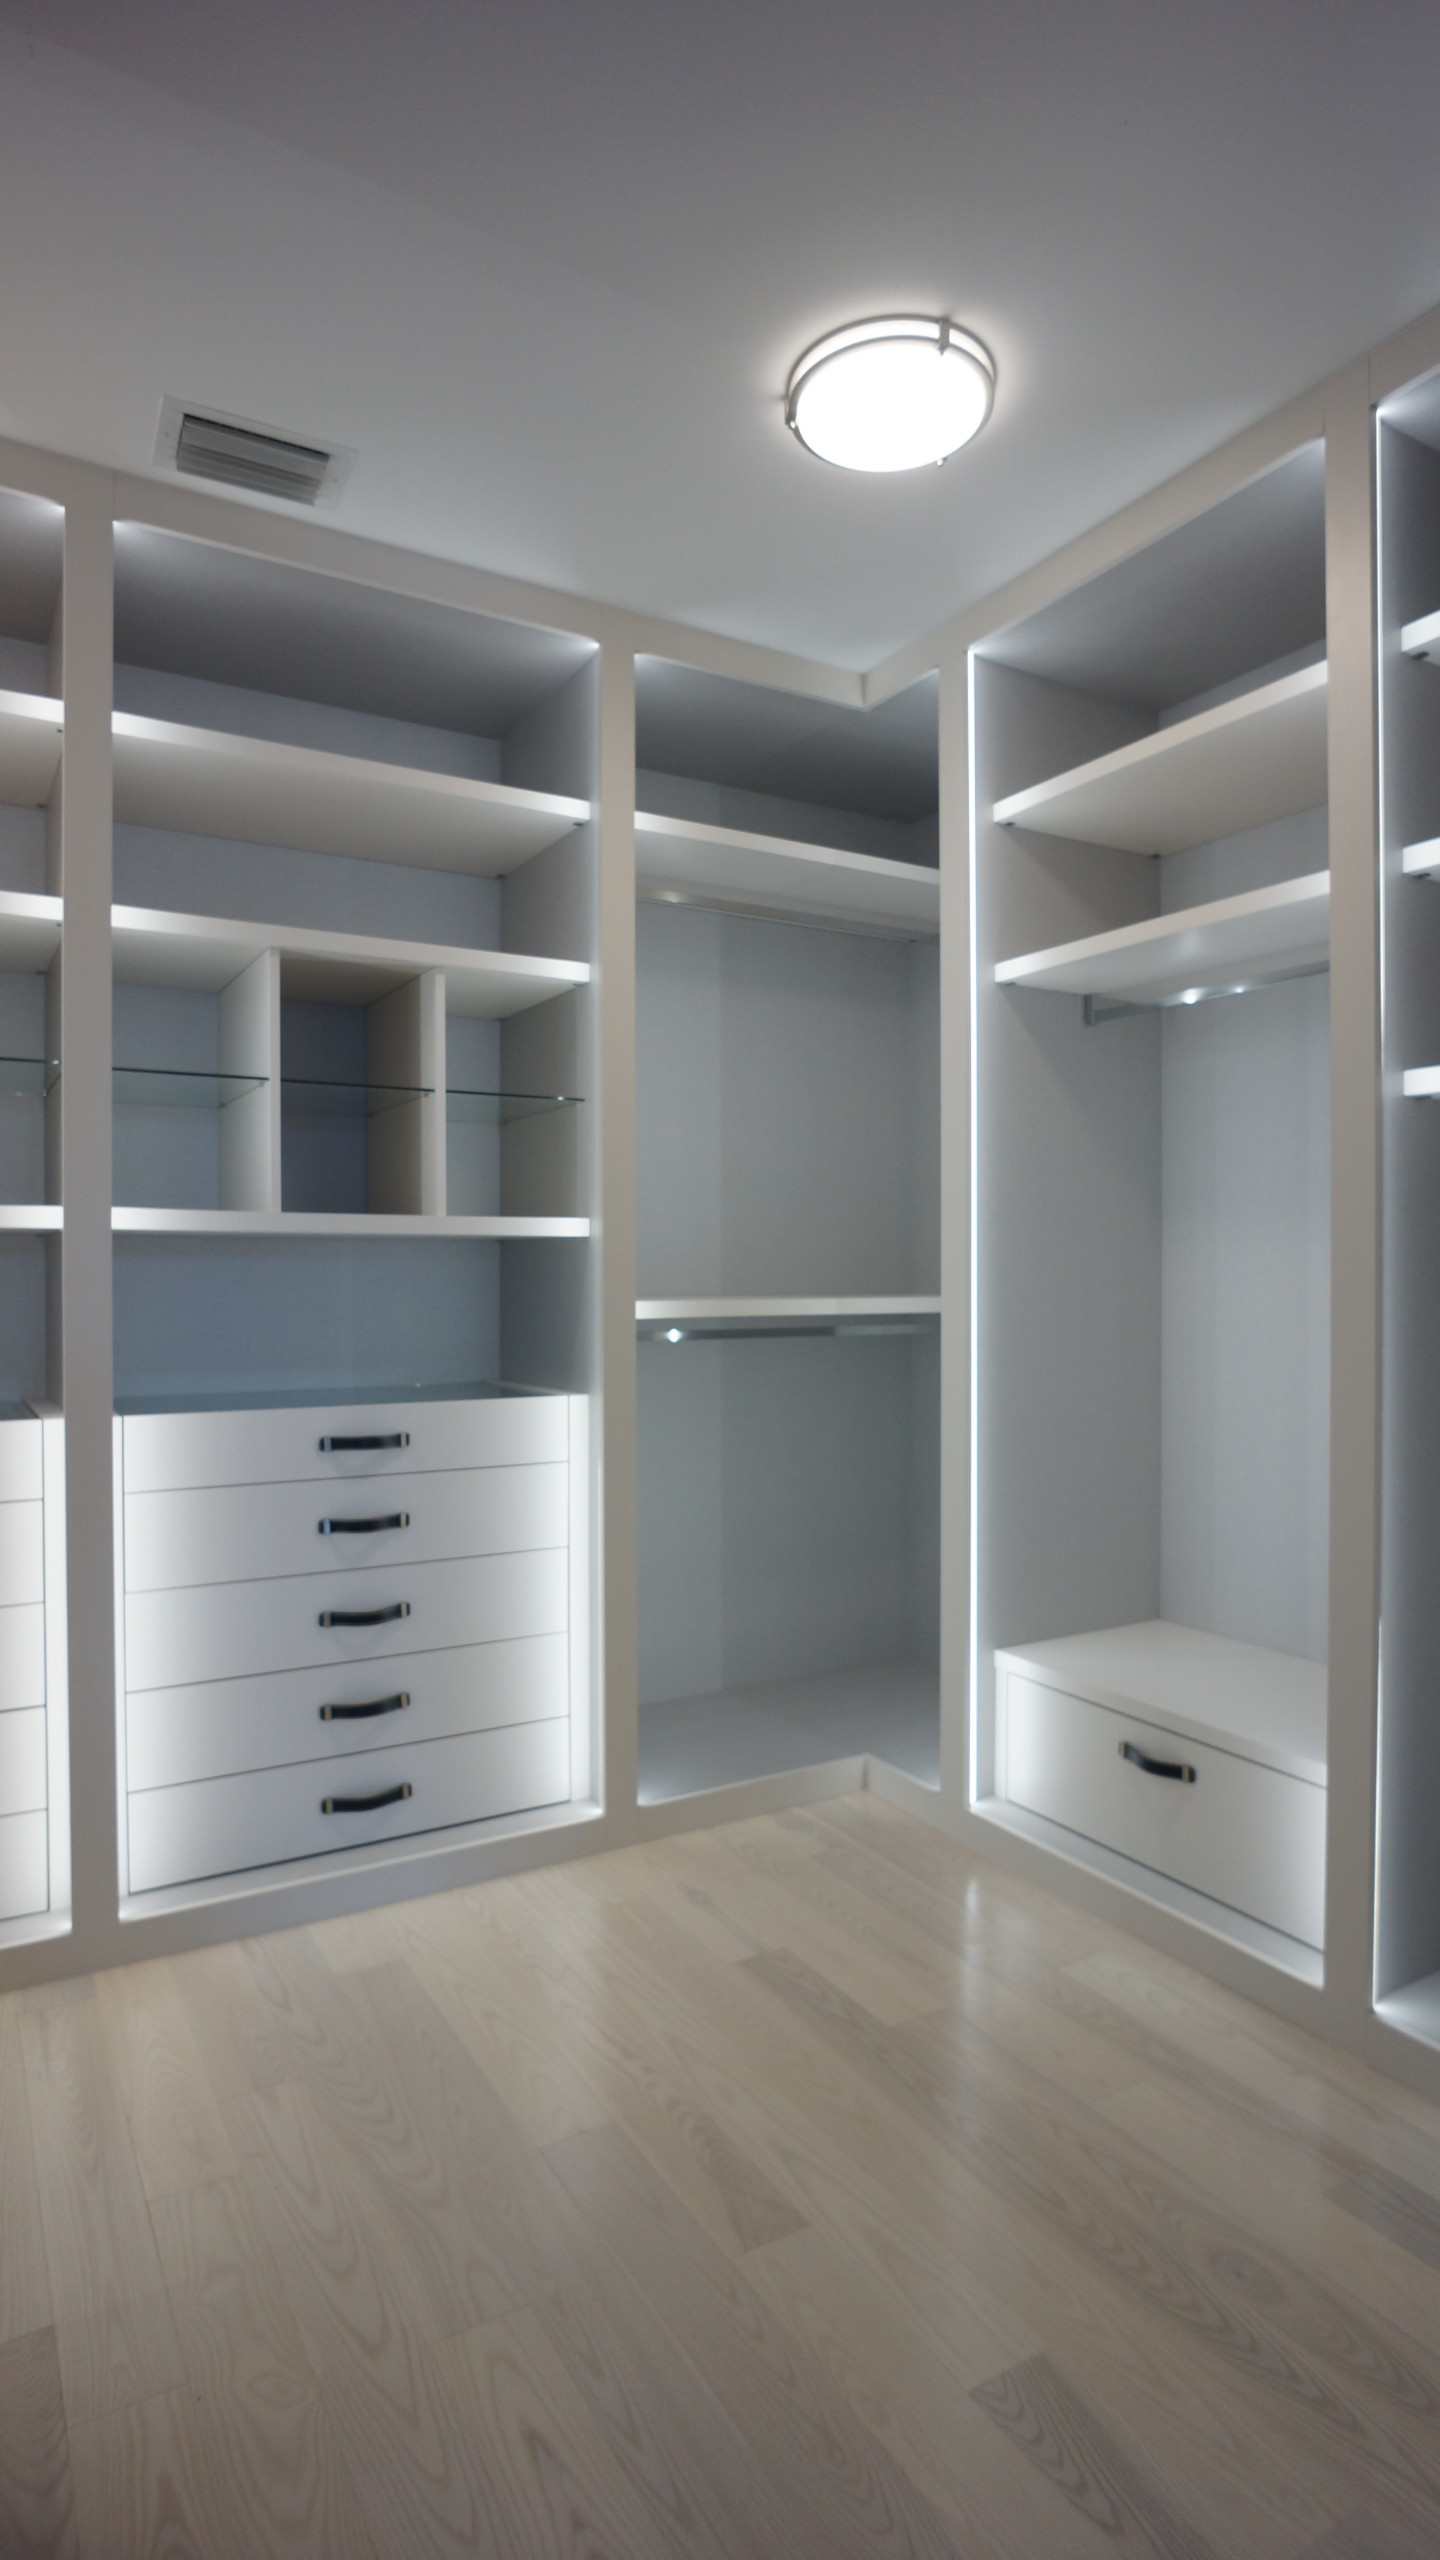 Image of: 75 Beautiful Modern Closet Pictures Ideas November 2020 Houzz